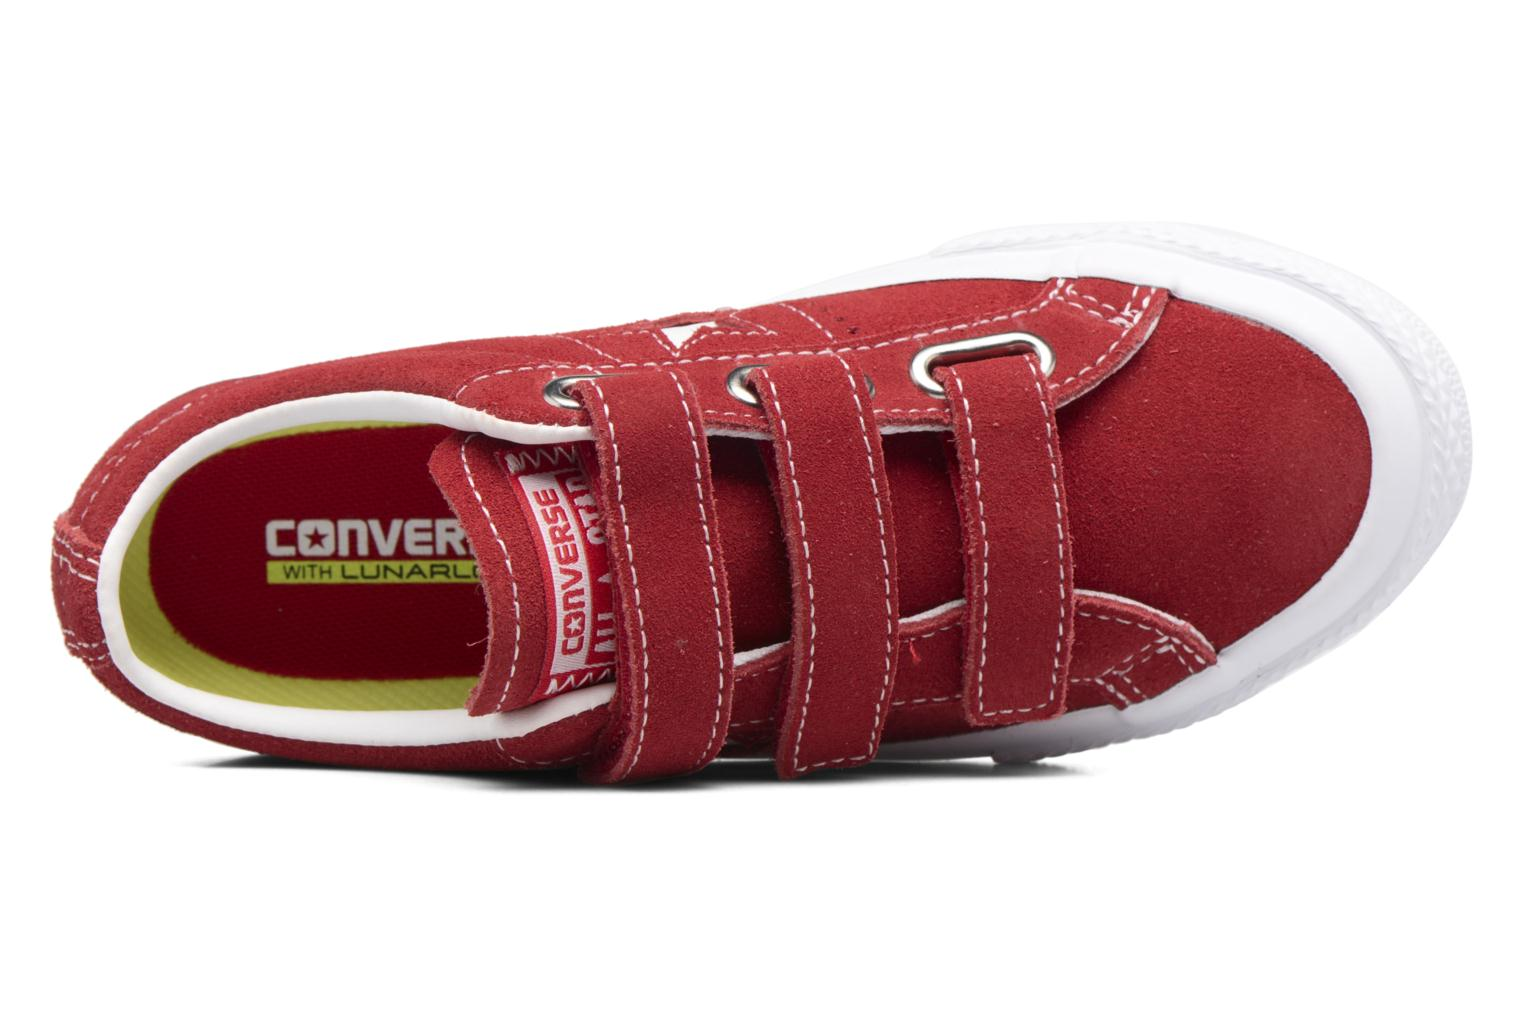 Converse One Star 3V Ox Red/White/Black